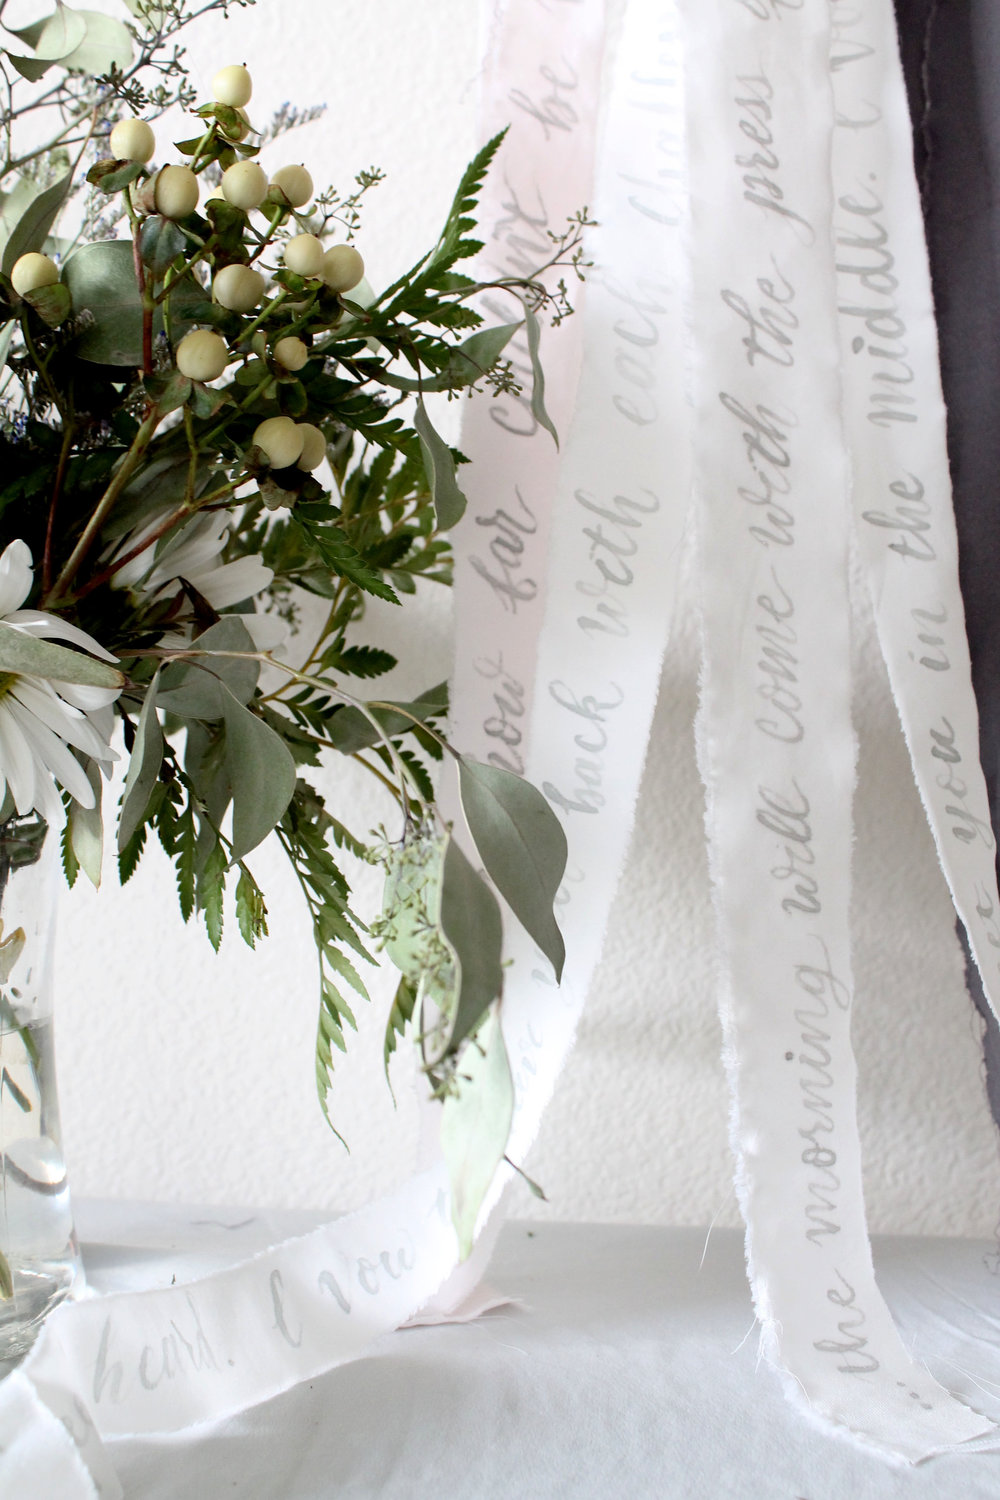 Ribbon calligraphy. Just might be my new favorite detail for weddings